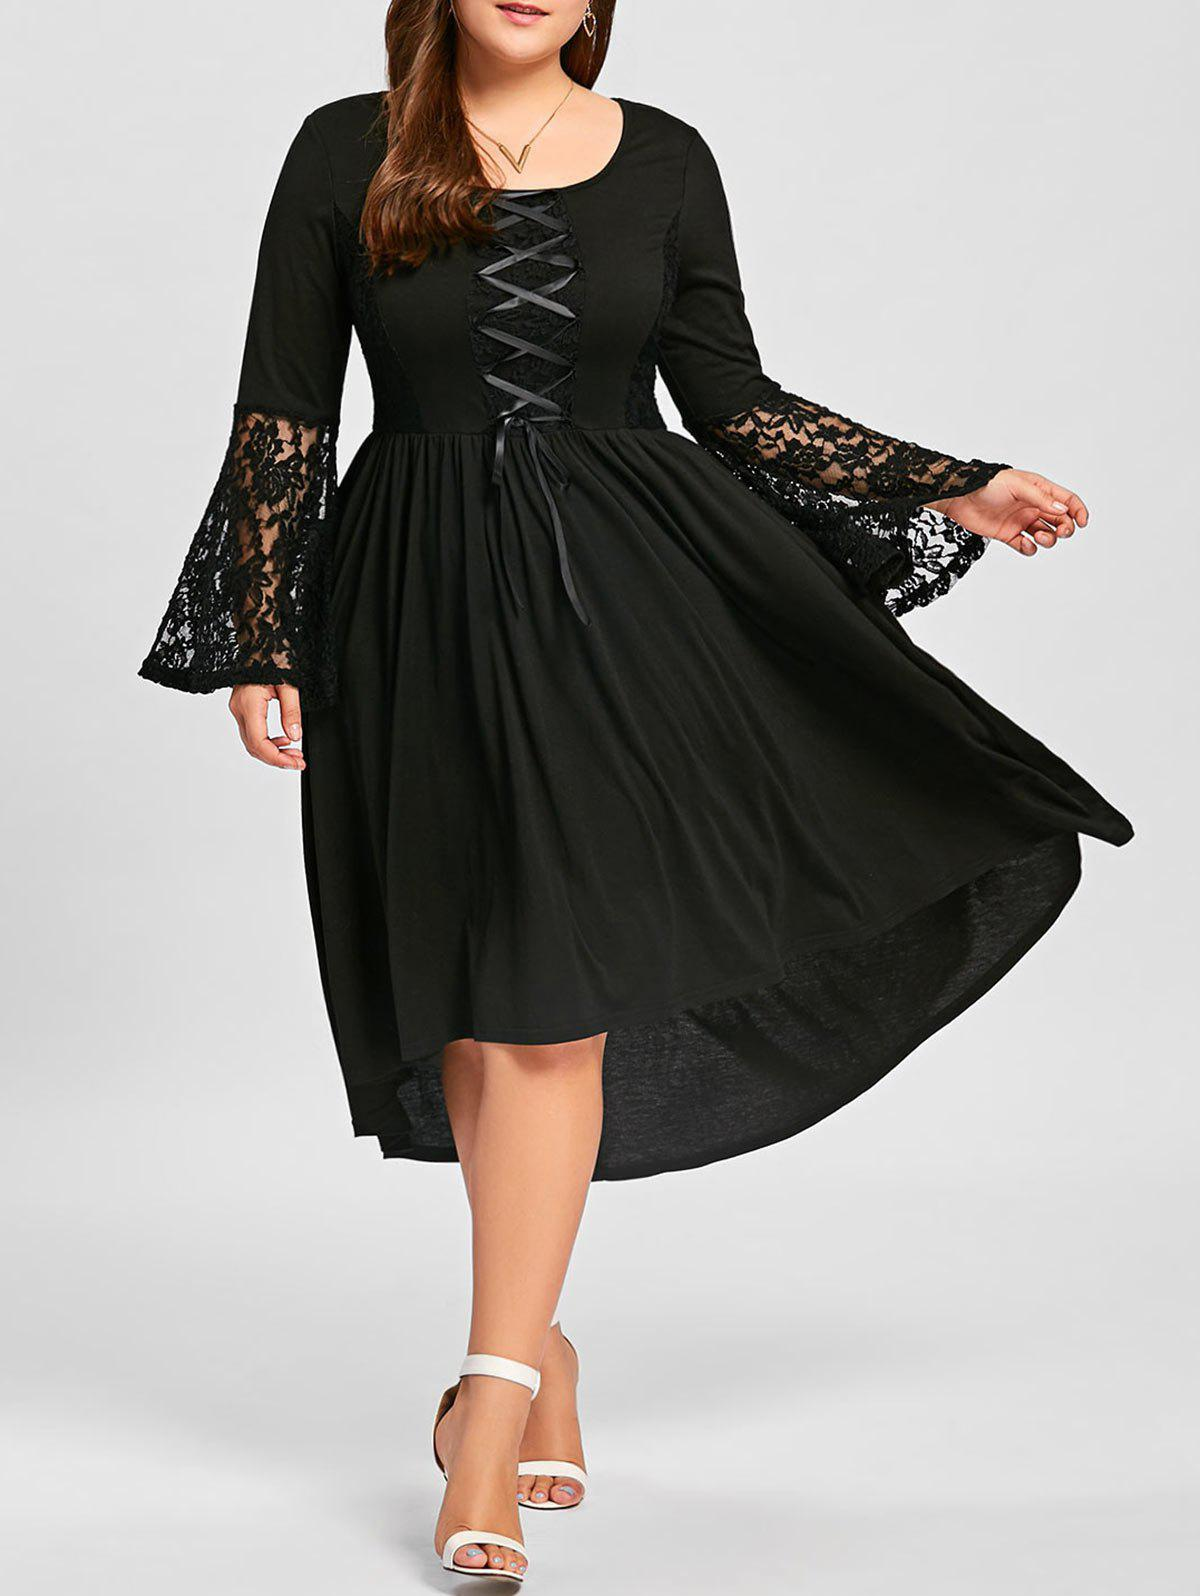 Plus Size High Low Lace Up Lace Panel DressWOMEN<br><br>Size: XL; Color: BLACK; Style: Casual; Material: Cotton,Polyester; Silhouette: Asymmetrical; Dresses Length: Mid-Calf; Neckline: Scoop Neck; Sleeve Type: Flare Sleeve; Sleeve Length: Long Sleeves; Embellishment: Criss-Cross,Lace,Panel; Pattern Type: Others; With Belt: No; Season: Fall,Spring; Weight: 0.5500kg; Package Contents: 1 x Dress;